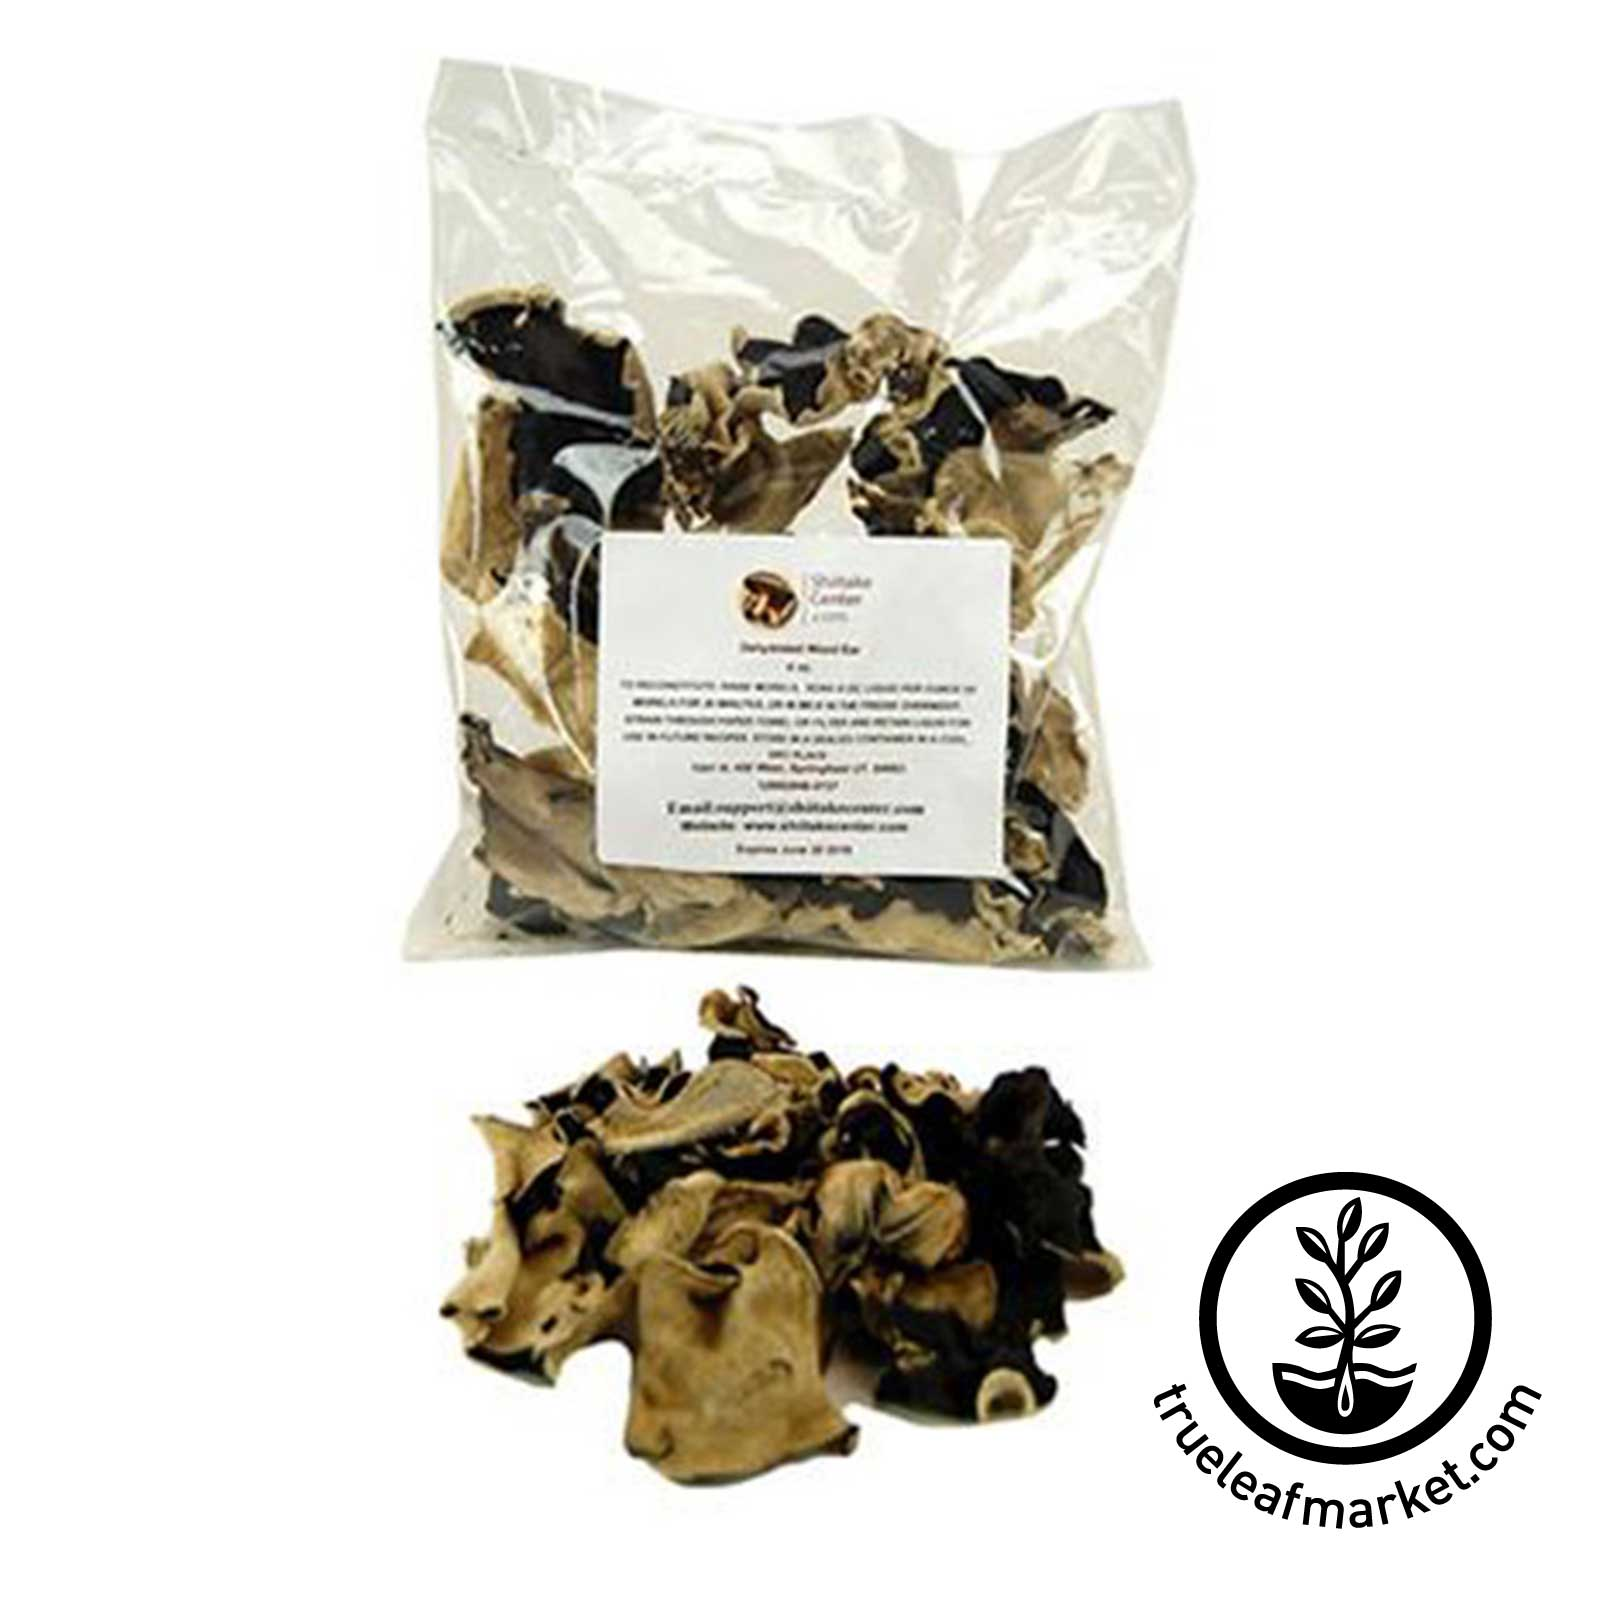 Wood Ear Mushrooms 4oz